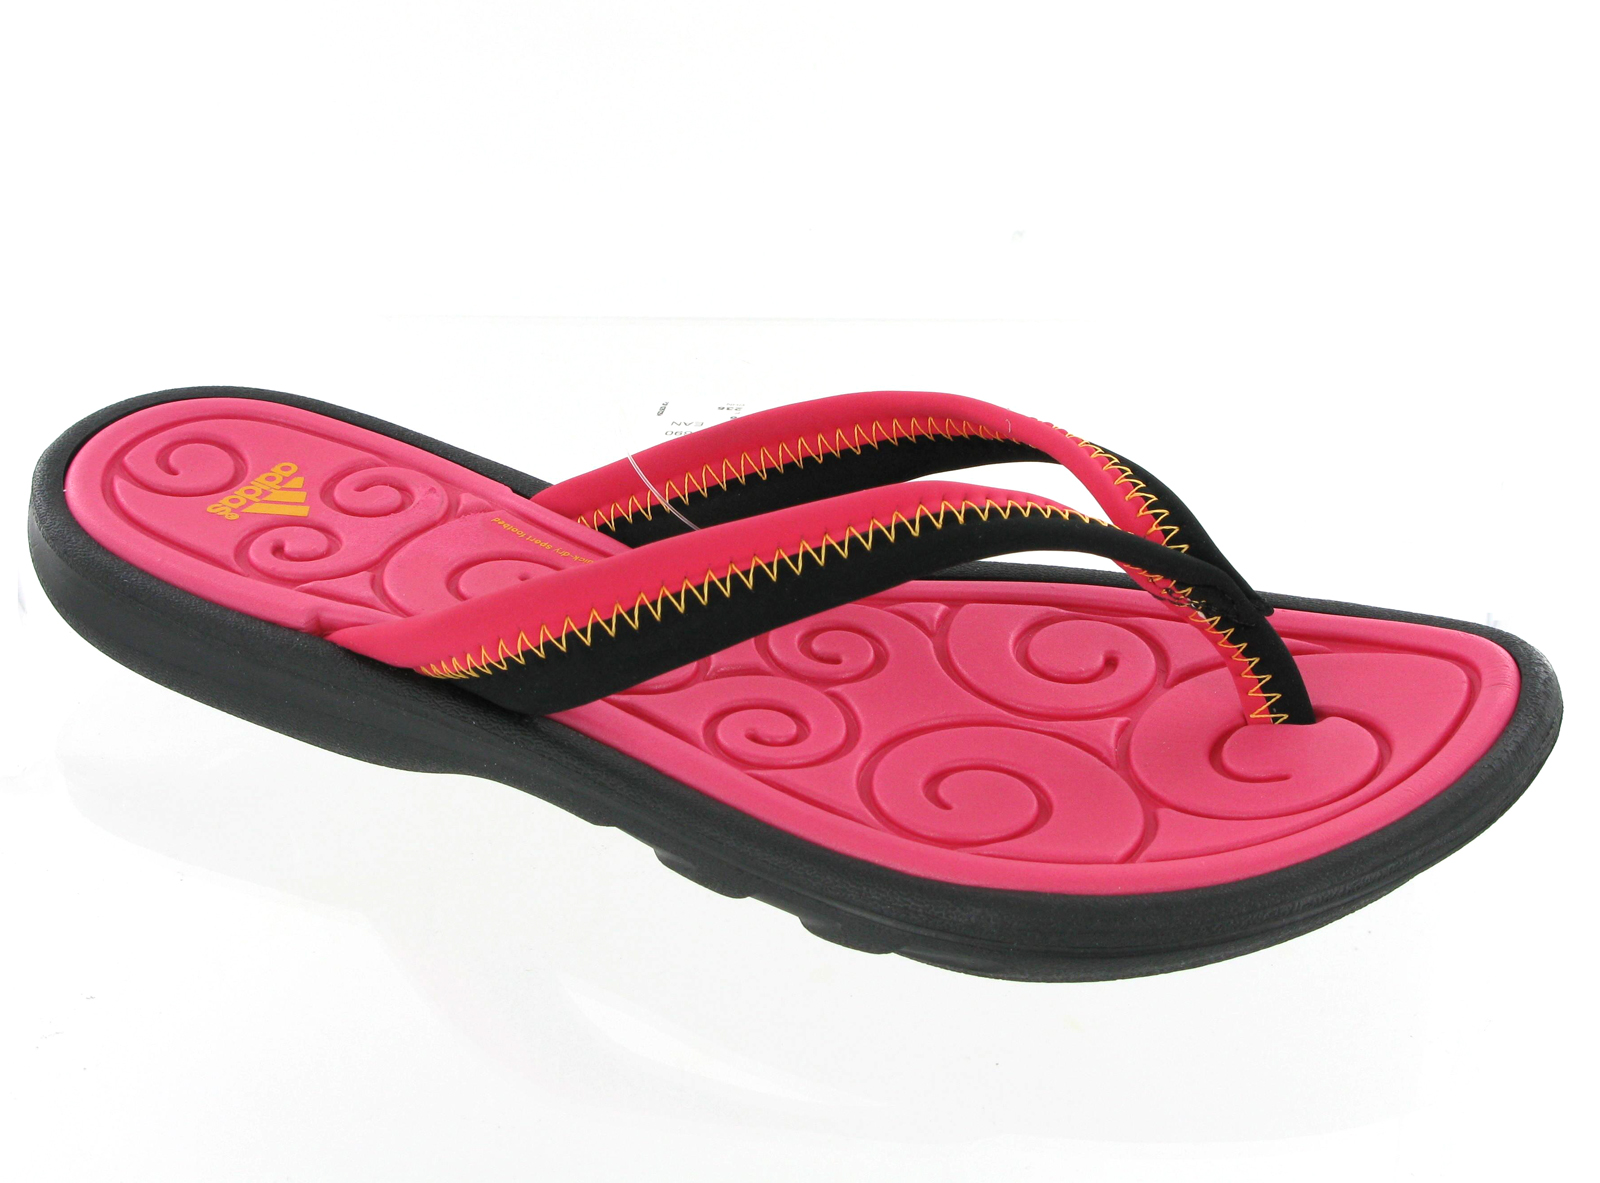 3974f3962c49 adidas flip flops womens red on sale   OFF72% Discounts